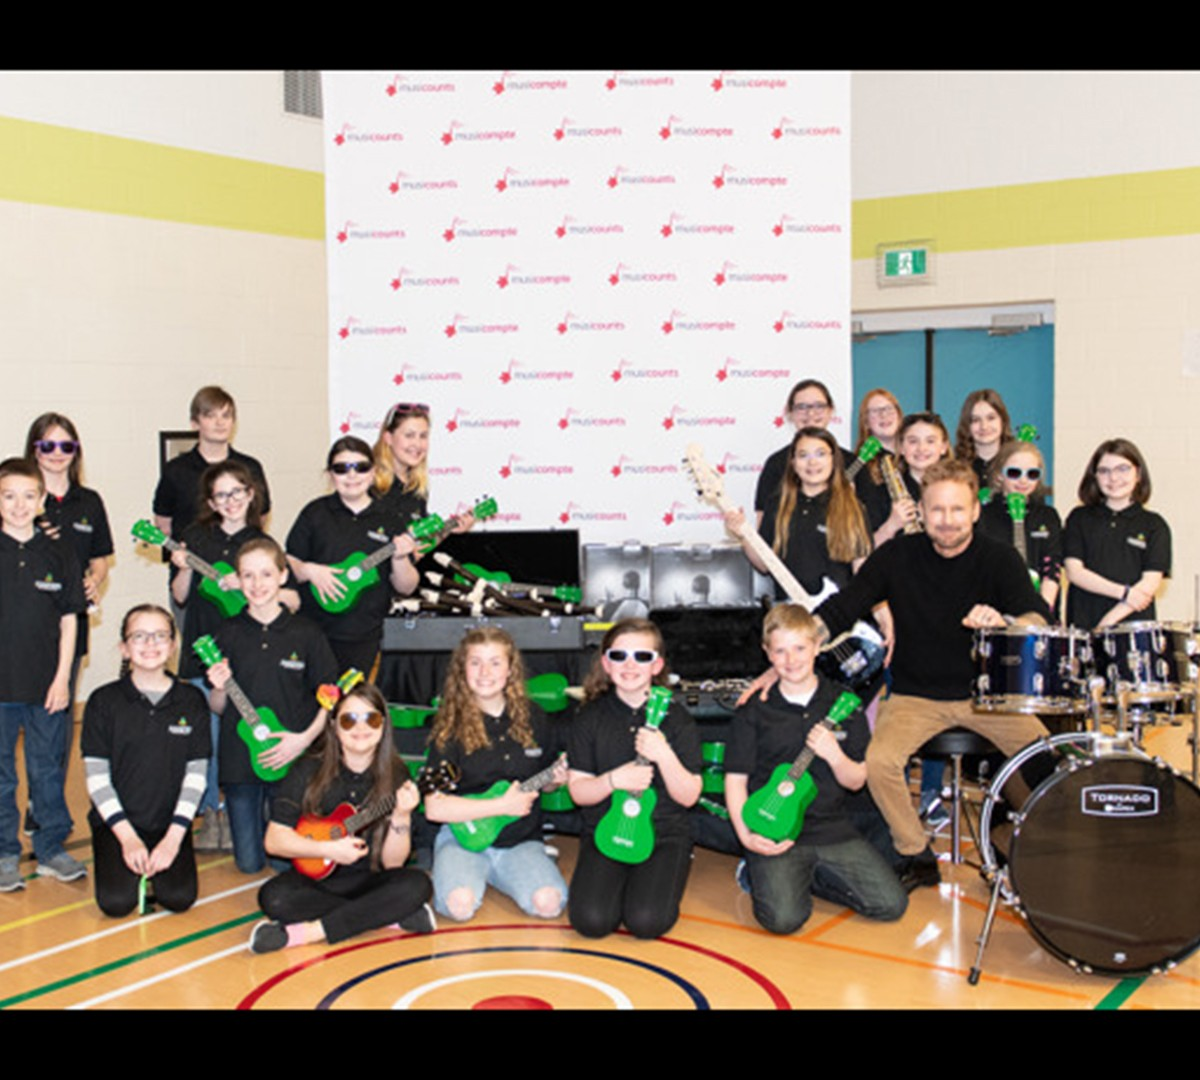 Canadian Music Icon Corey Hart Joins MusiCounts to Surprise Torbay Students